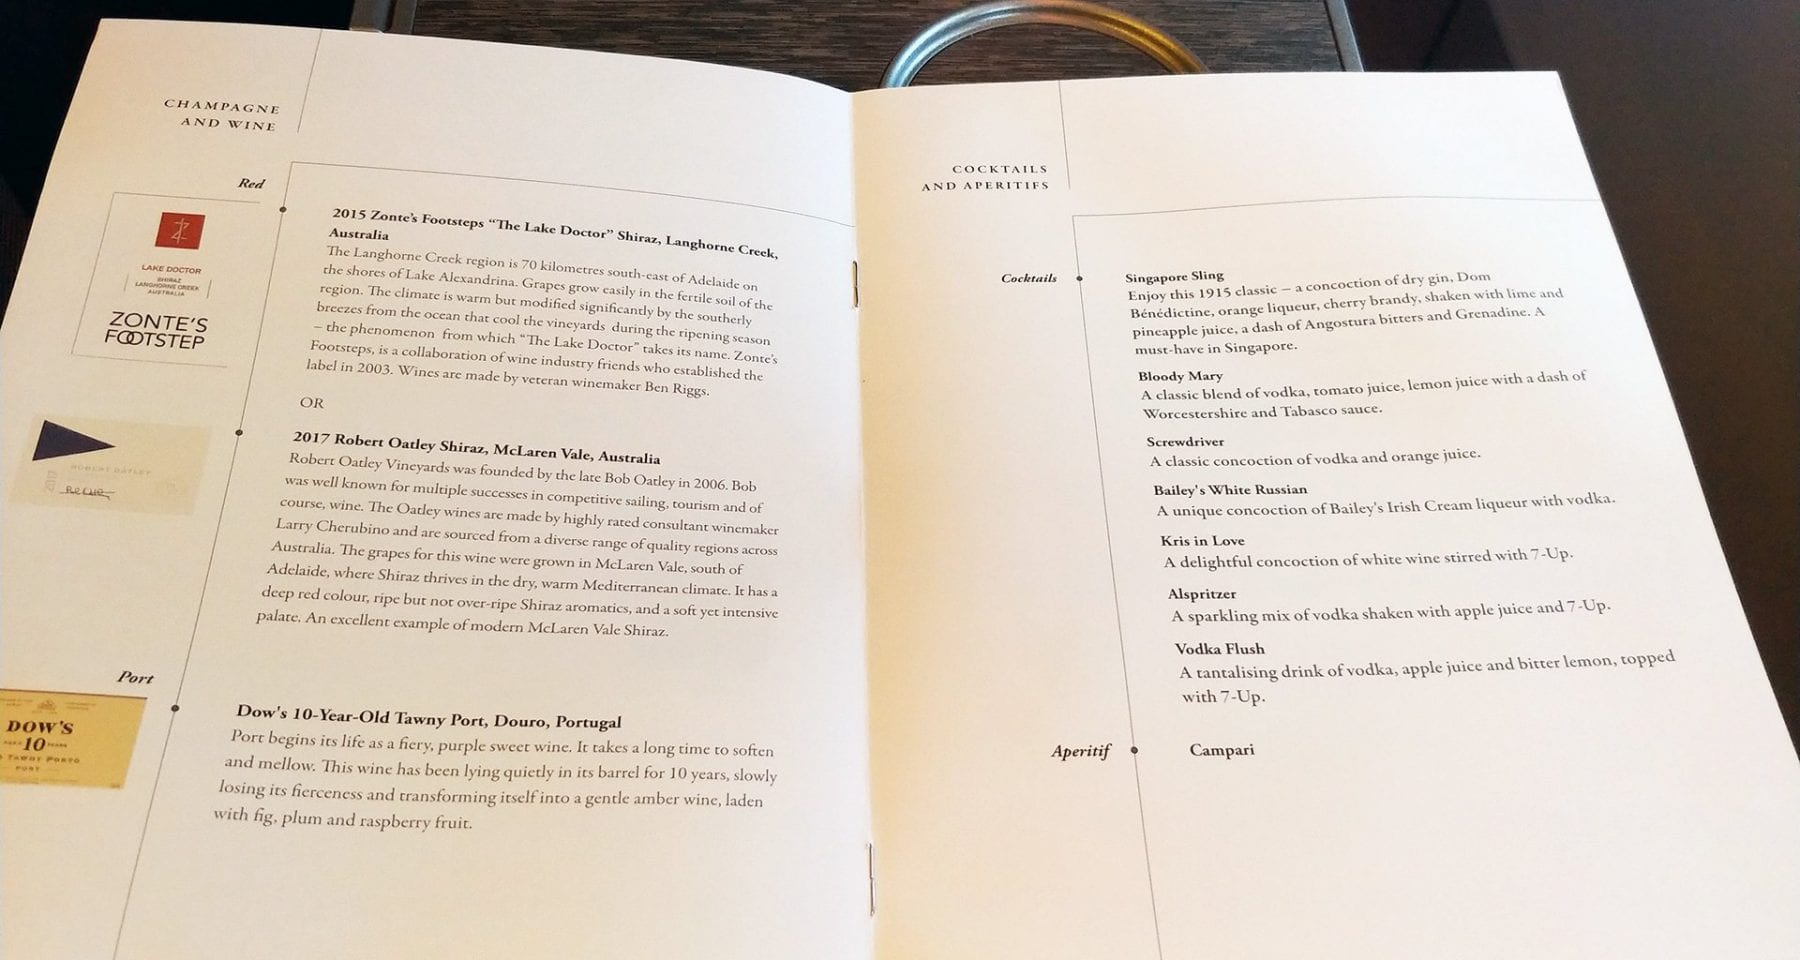 Singapore Airlines Inflight Wine Menu